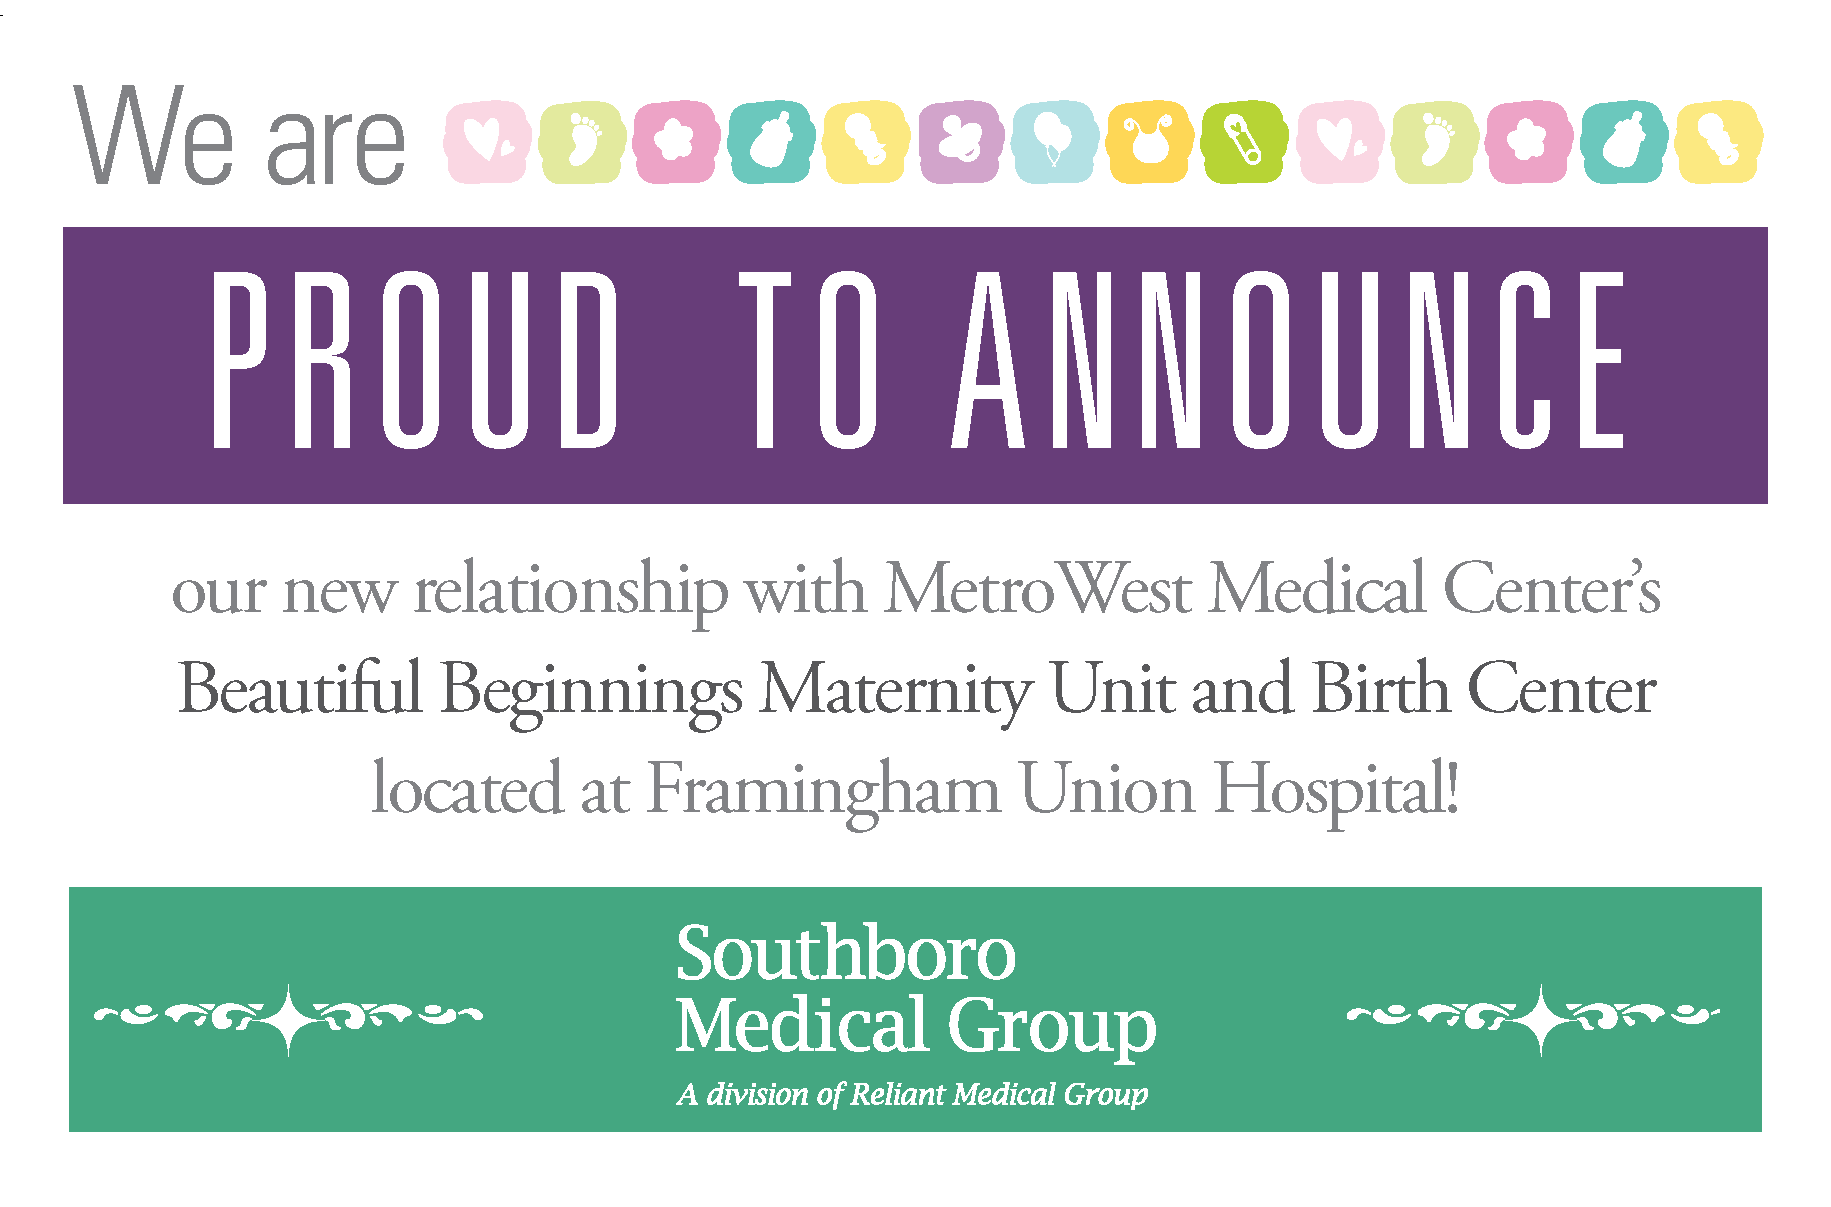 New Relationship With MetroWest Medical Center